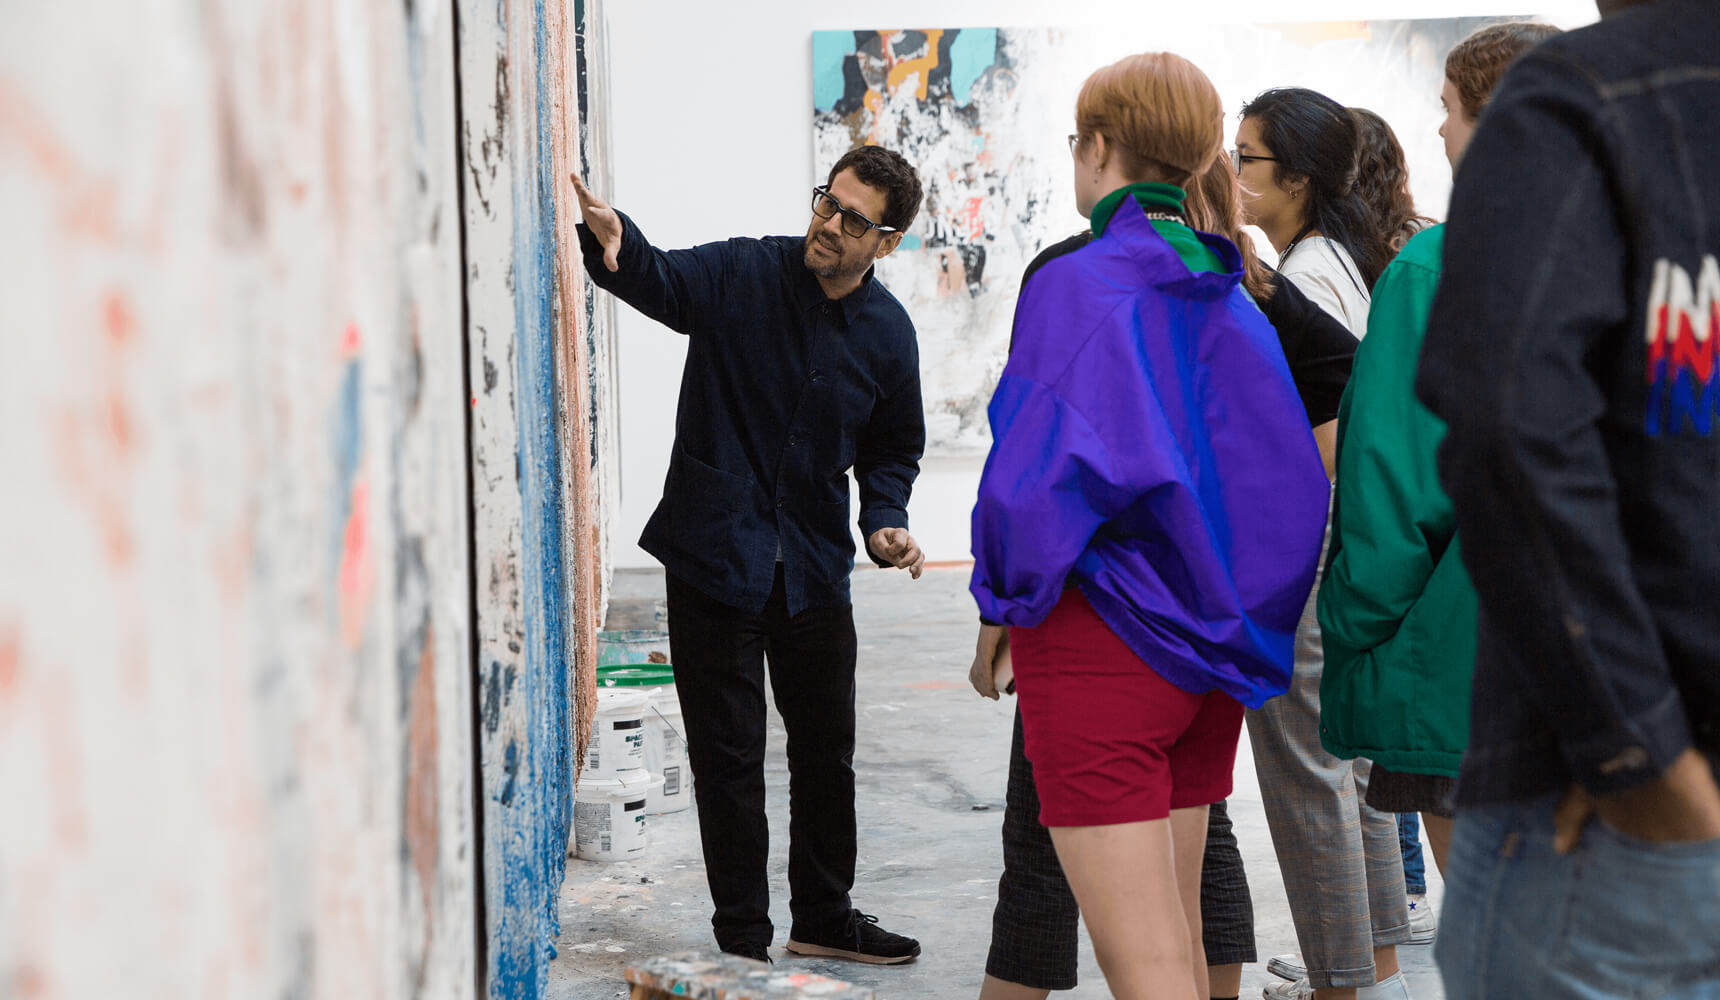 A man wearing a black shirt and black pants points to a piece of art while a group of young people look on.